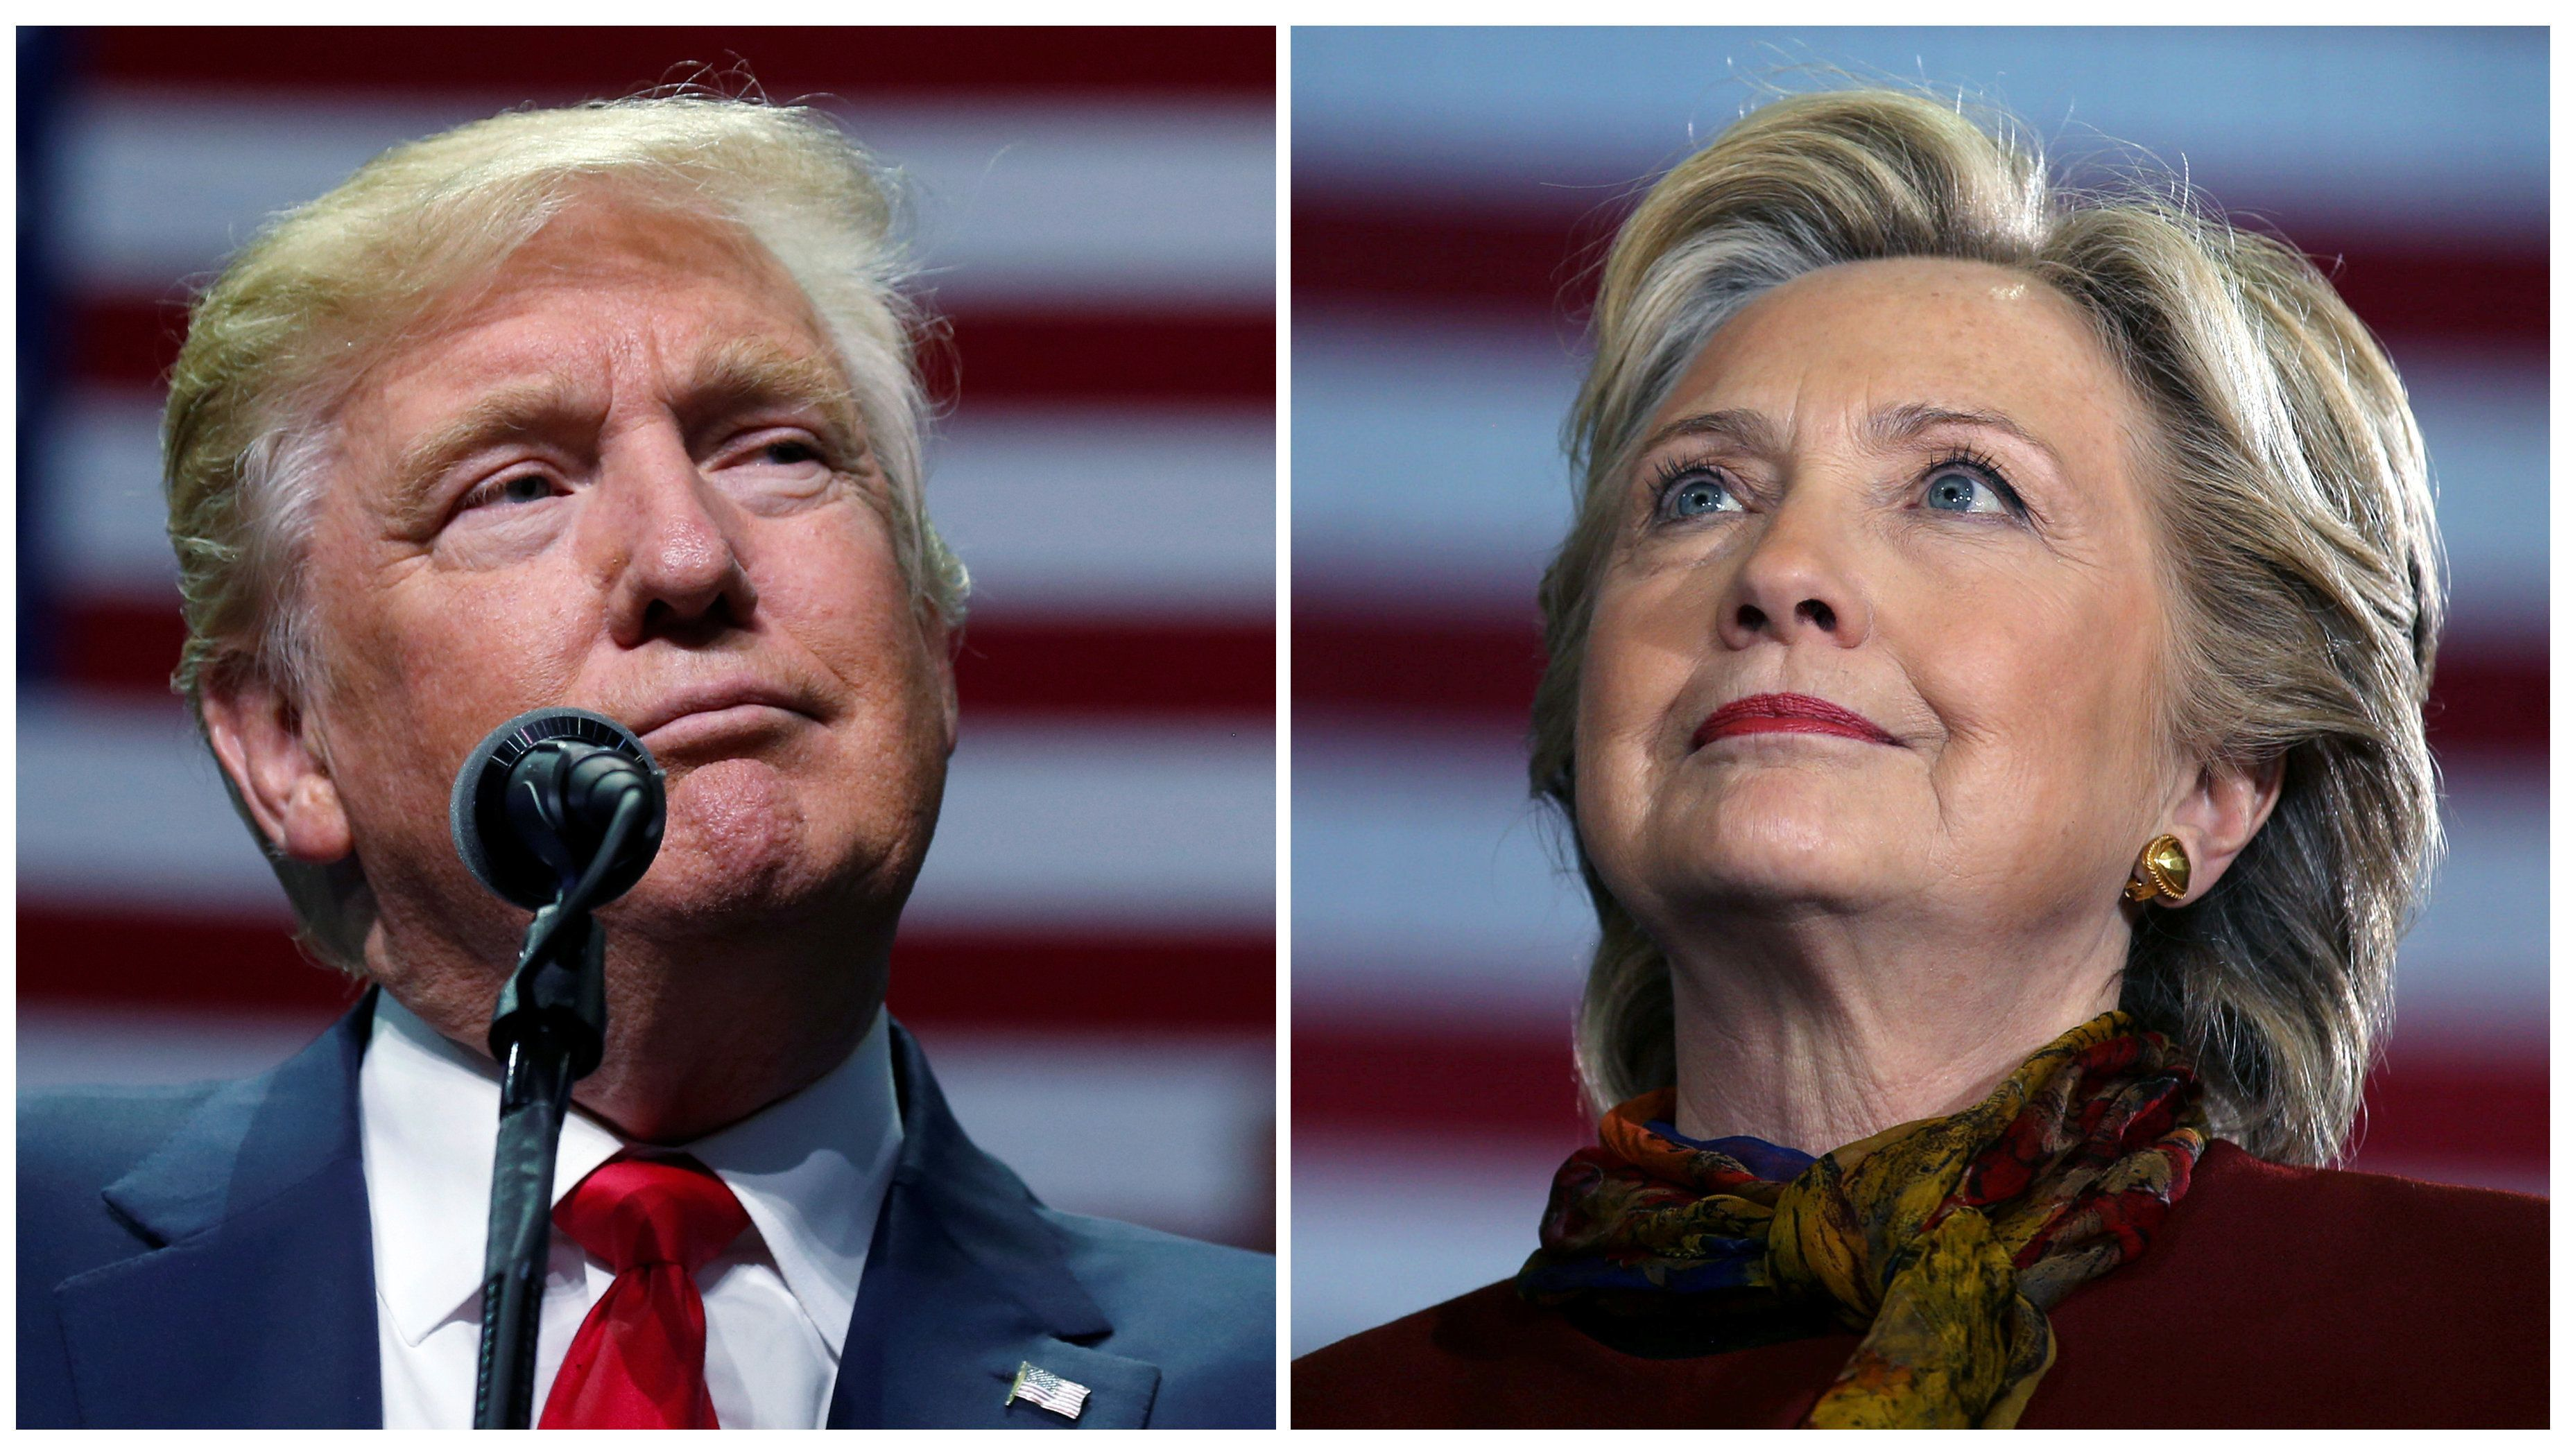 Trump and Clinton are not exactly